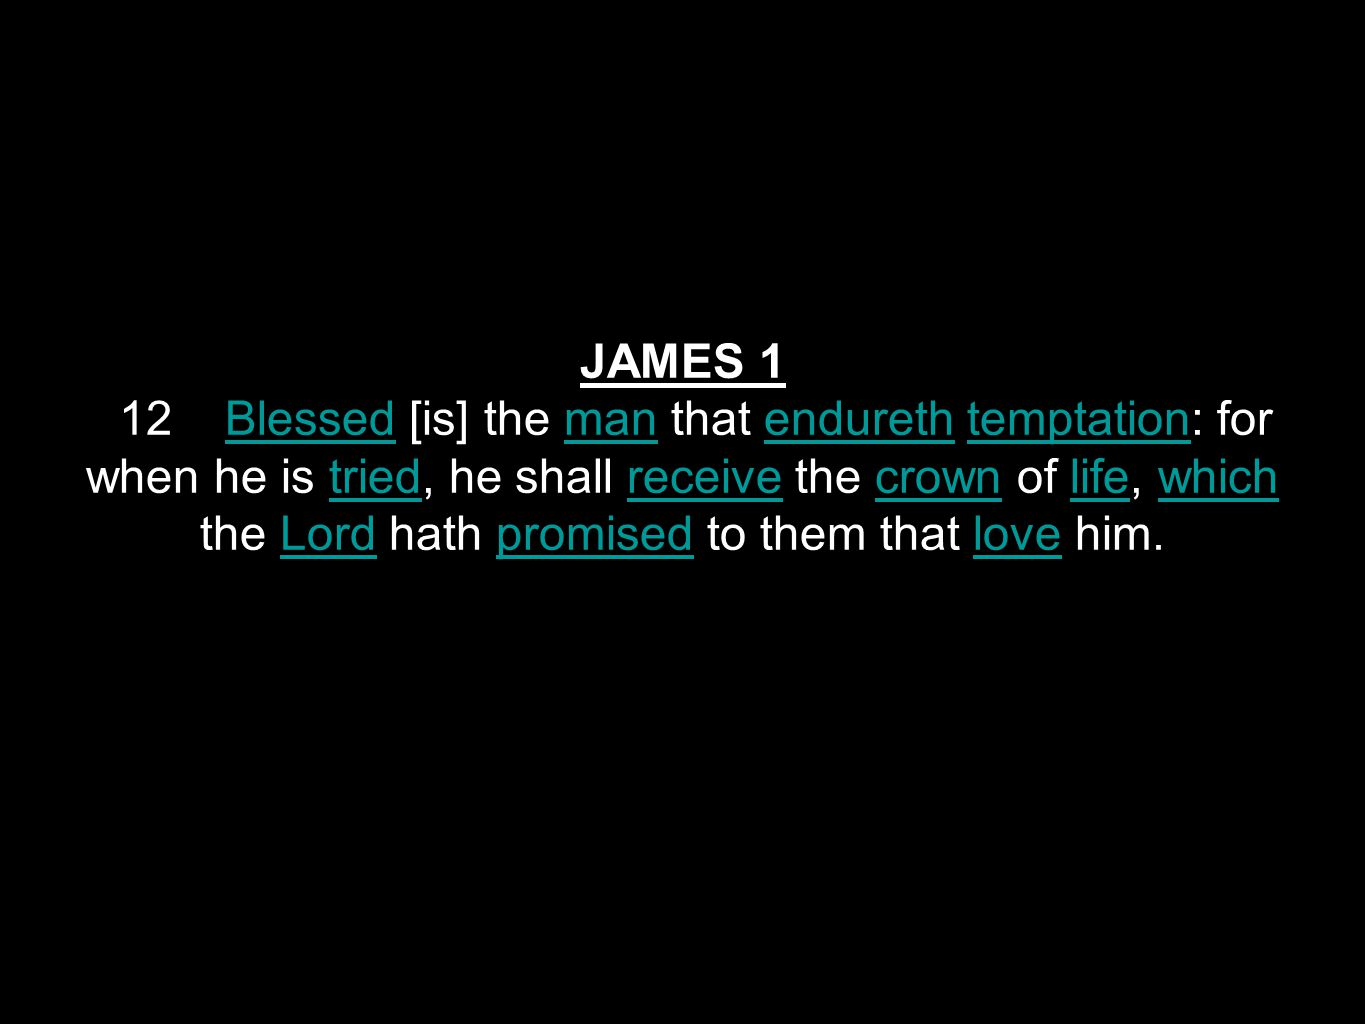 JAMES 1 12 Blessed [is] the man that endureth temptation: for when he is tried, he shall receive the crown of life, which the Lord hath promised to them that love him.BlessedmanendurethtemptationtriedreceivecrownlifewhichLordpromisedlove